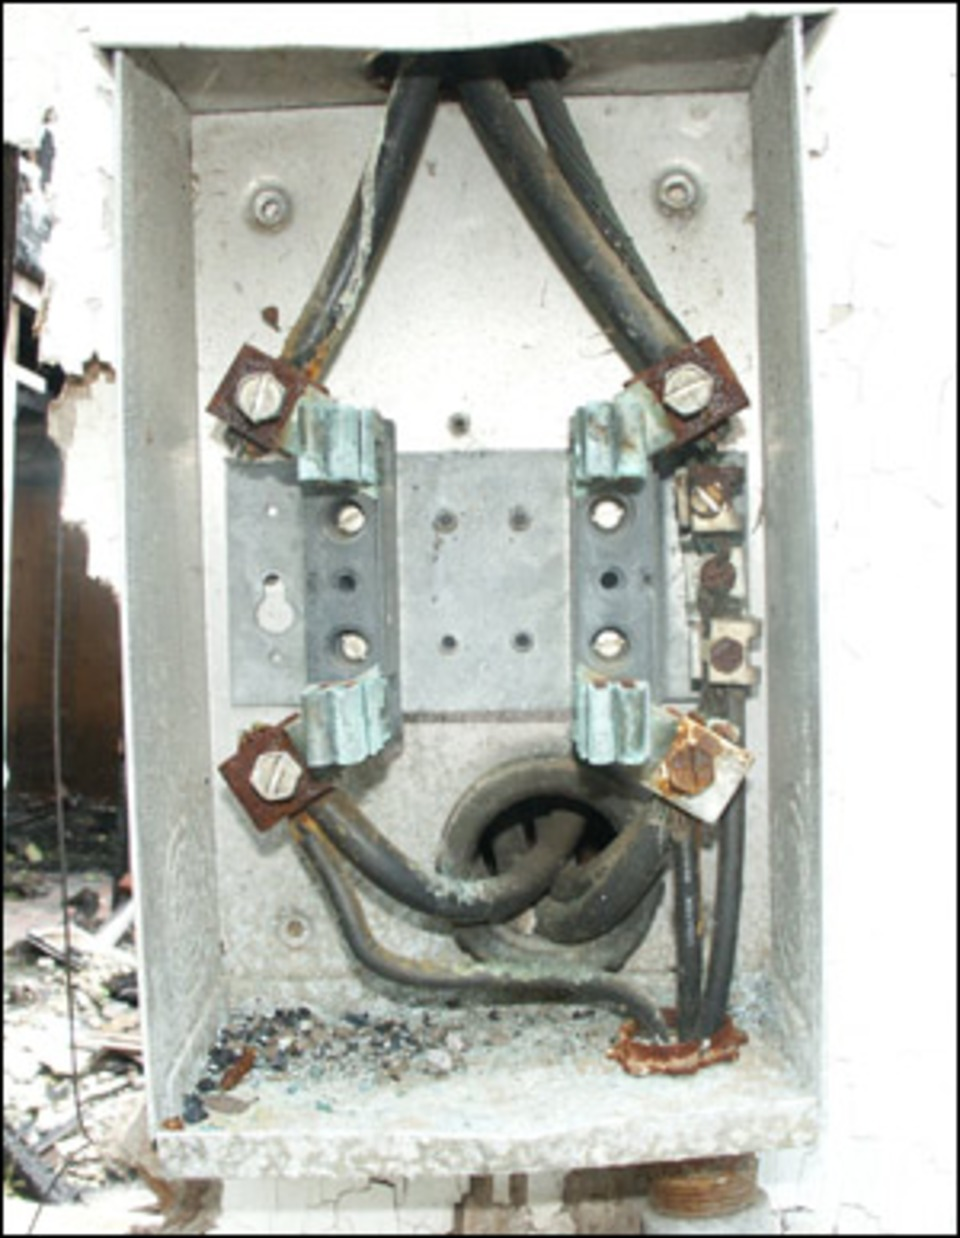 Company Level Training Utility Control Part 2 Electrical Wiring Credit Photo By Larry Manasco